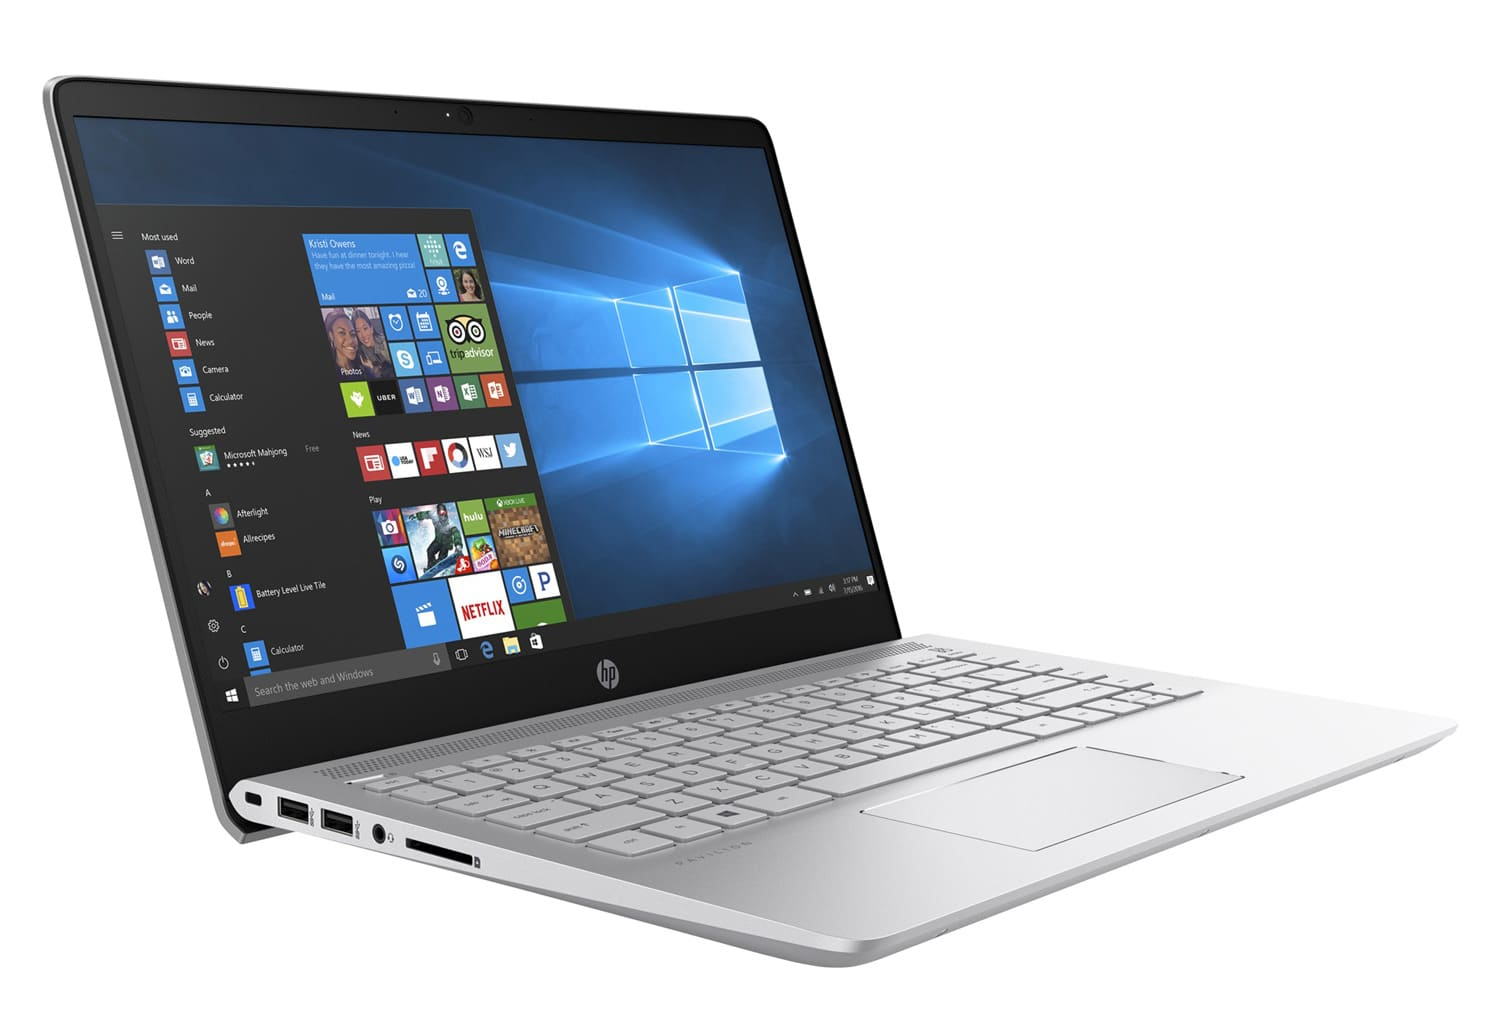 HP Pavilion 14-bk011nf, Ultrabook 14 pouces IPS Kaby Lake SSD (399€)